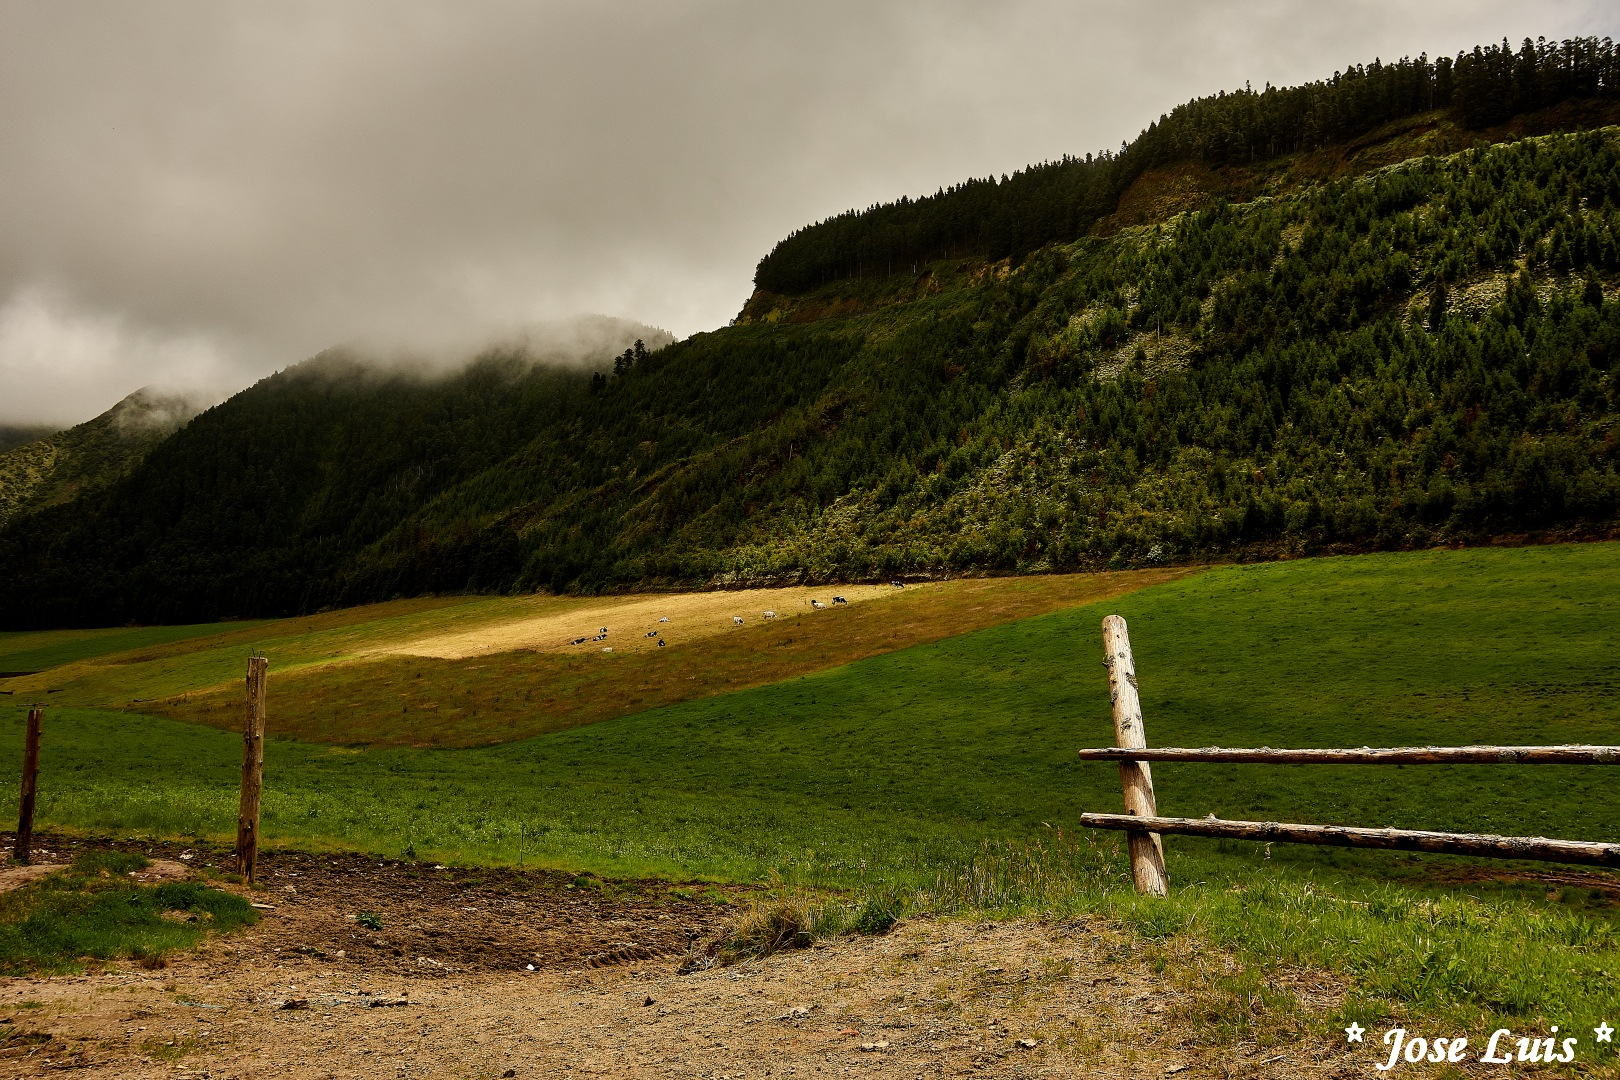 Açores by jose.downlord